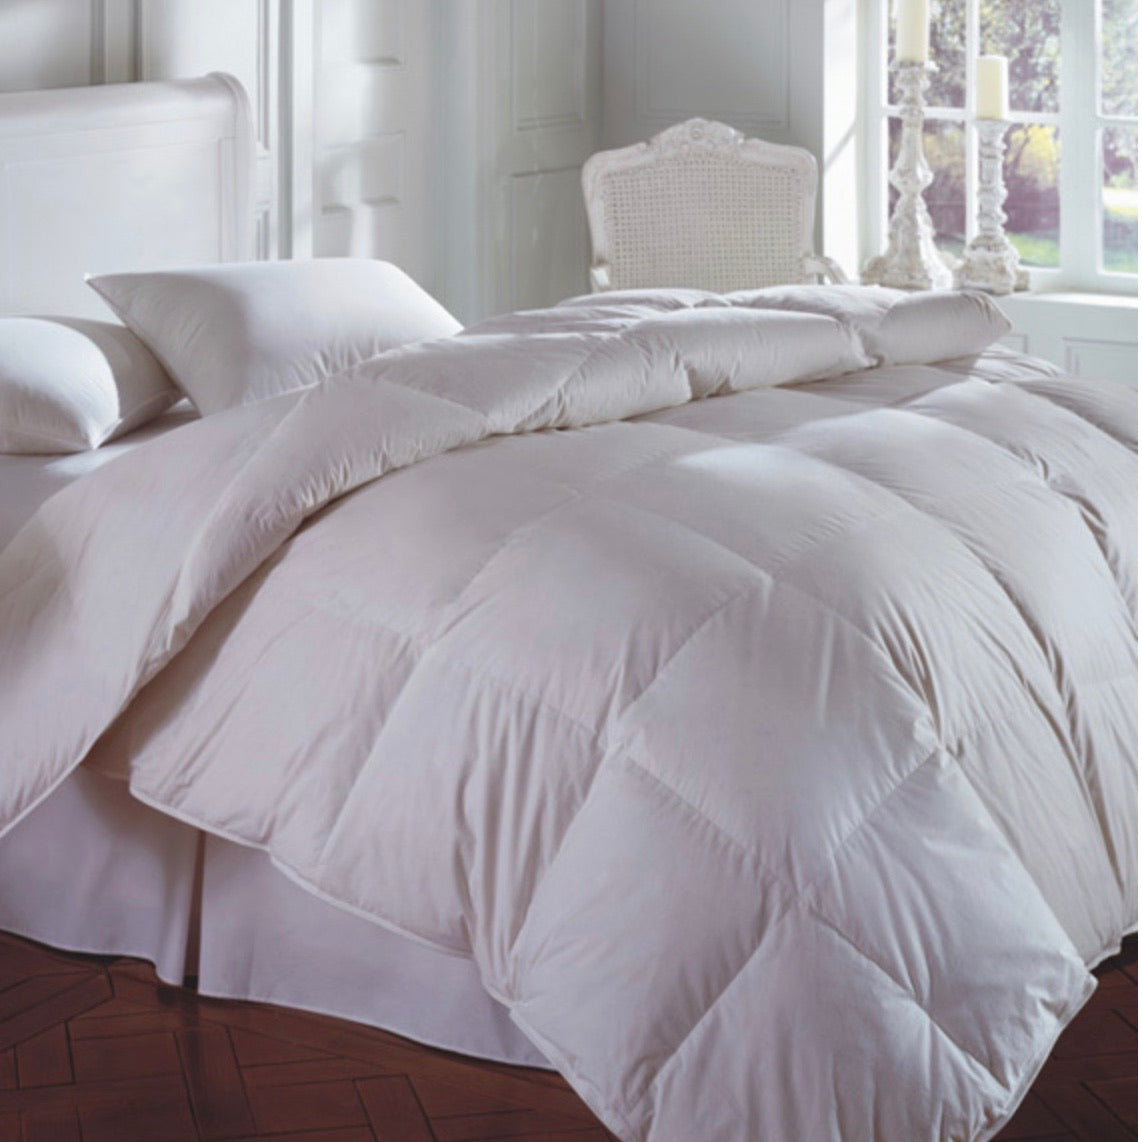 Cascada Peak 600 Fill White Down Comforter - Maisonette Shop